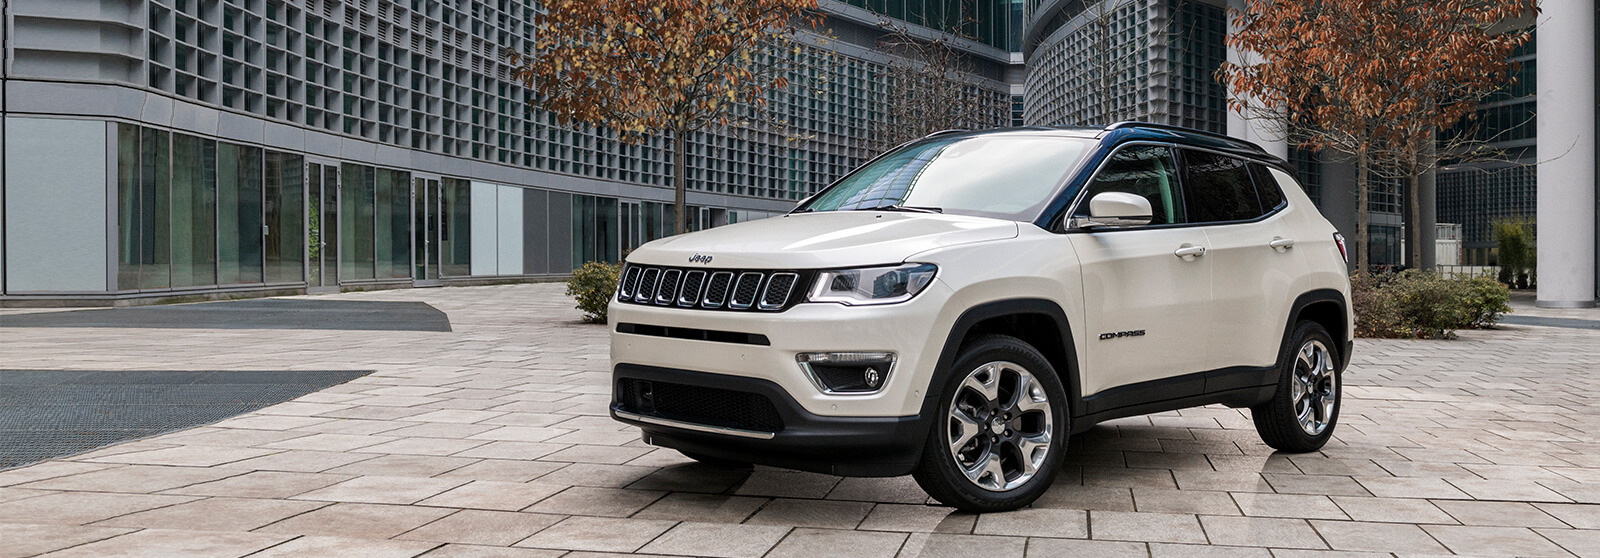 Jeep Compass Family Suv In South Africa